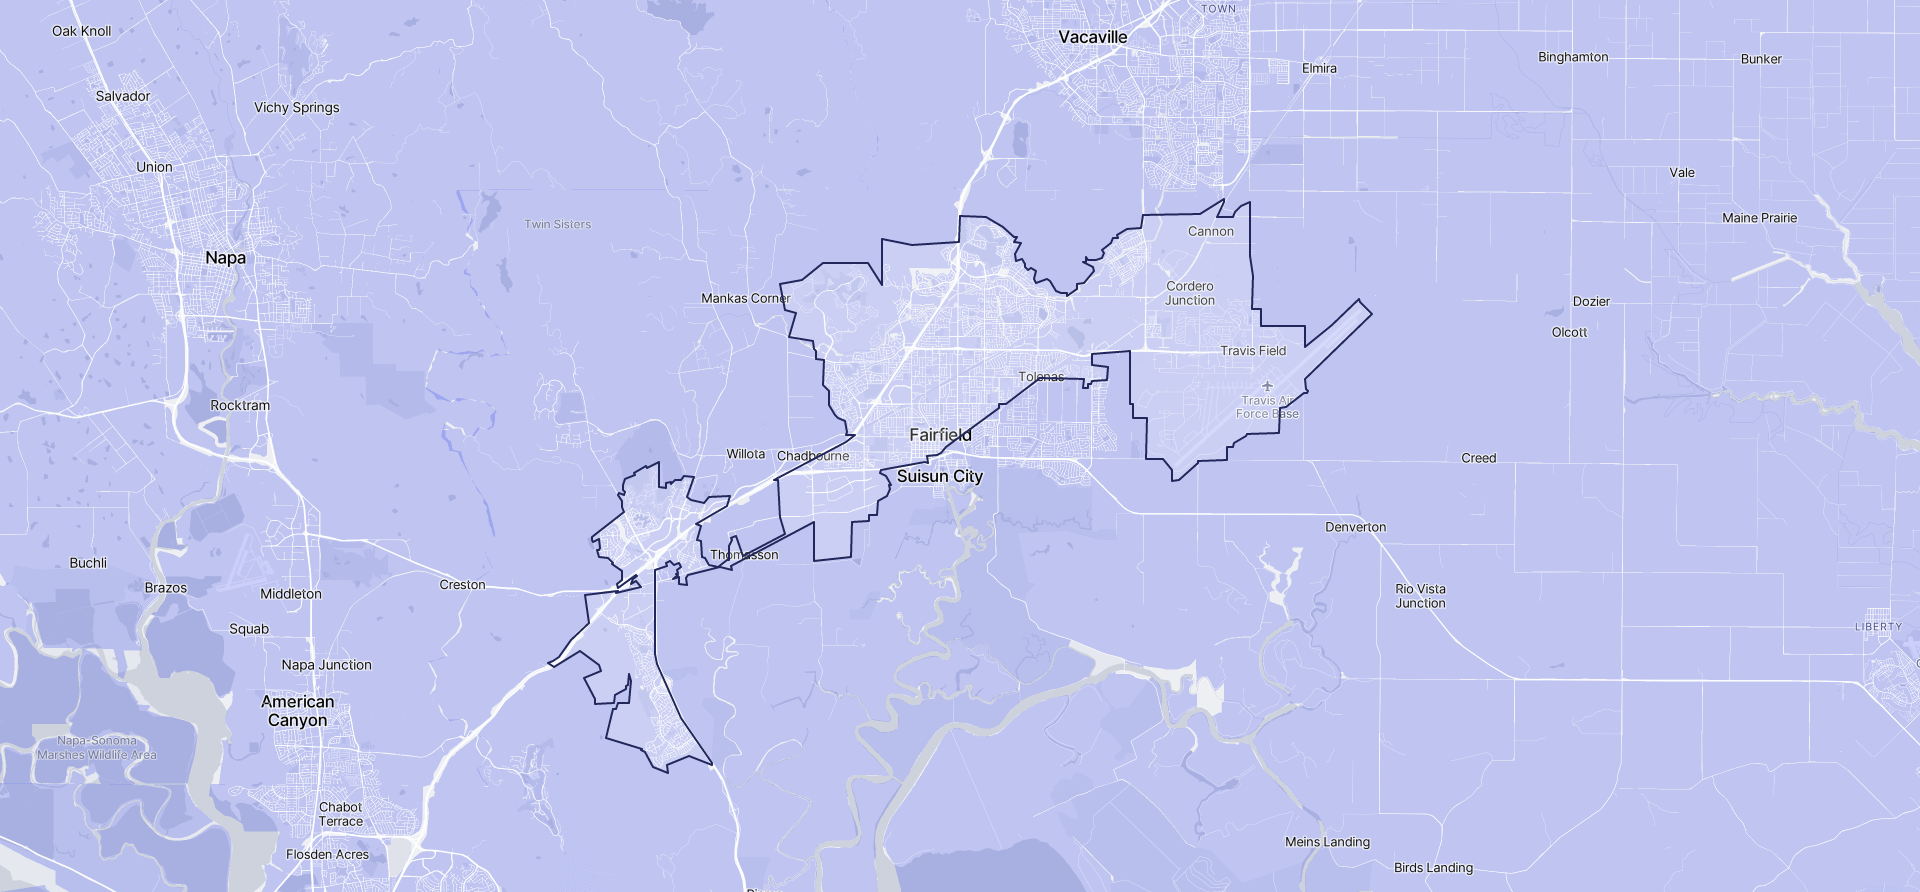 Image of Fairfield boundaries on a map.